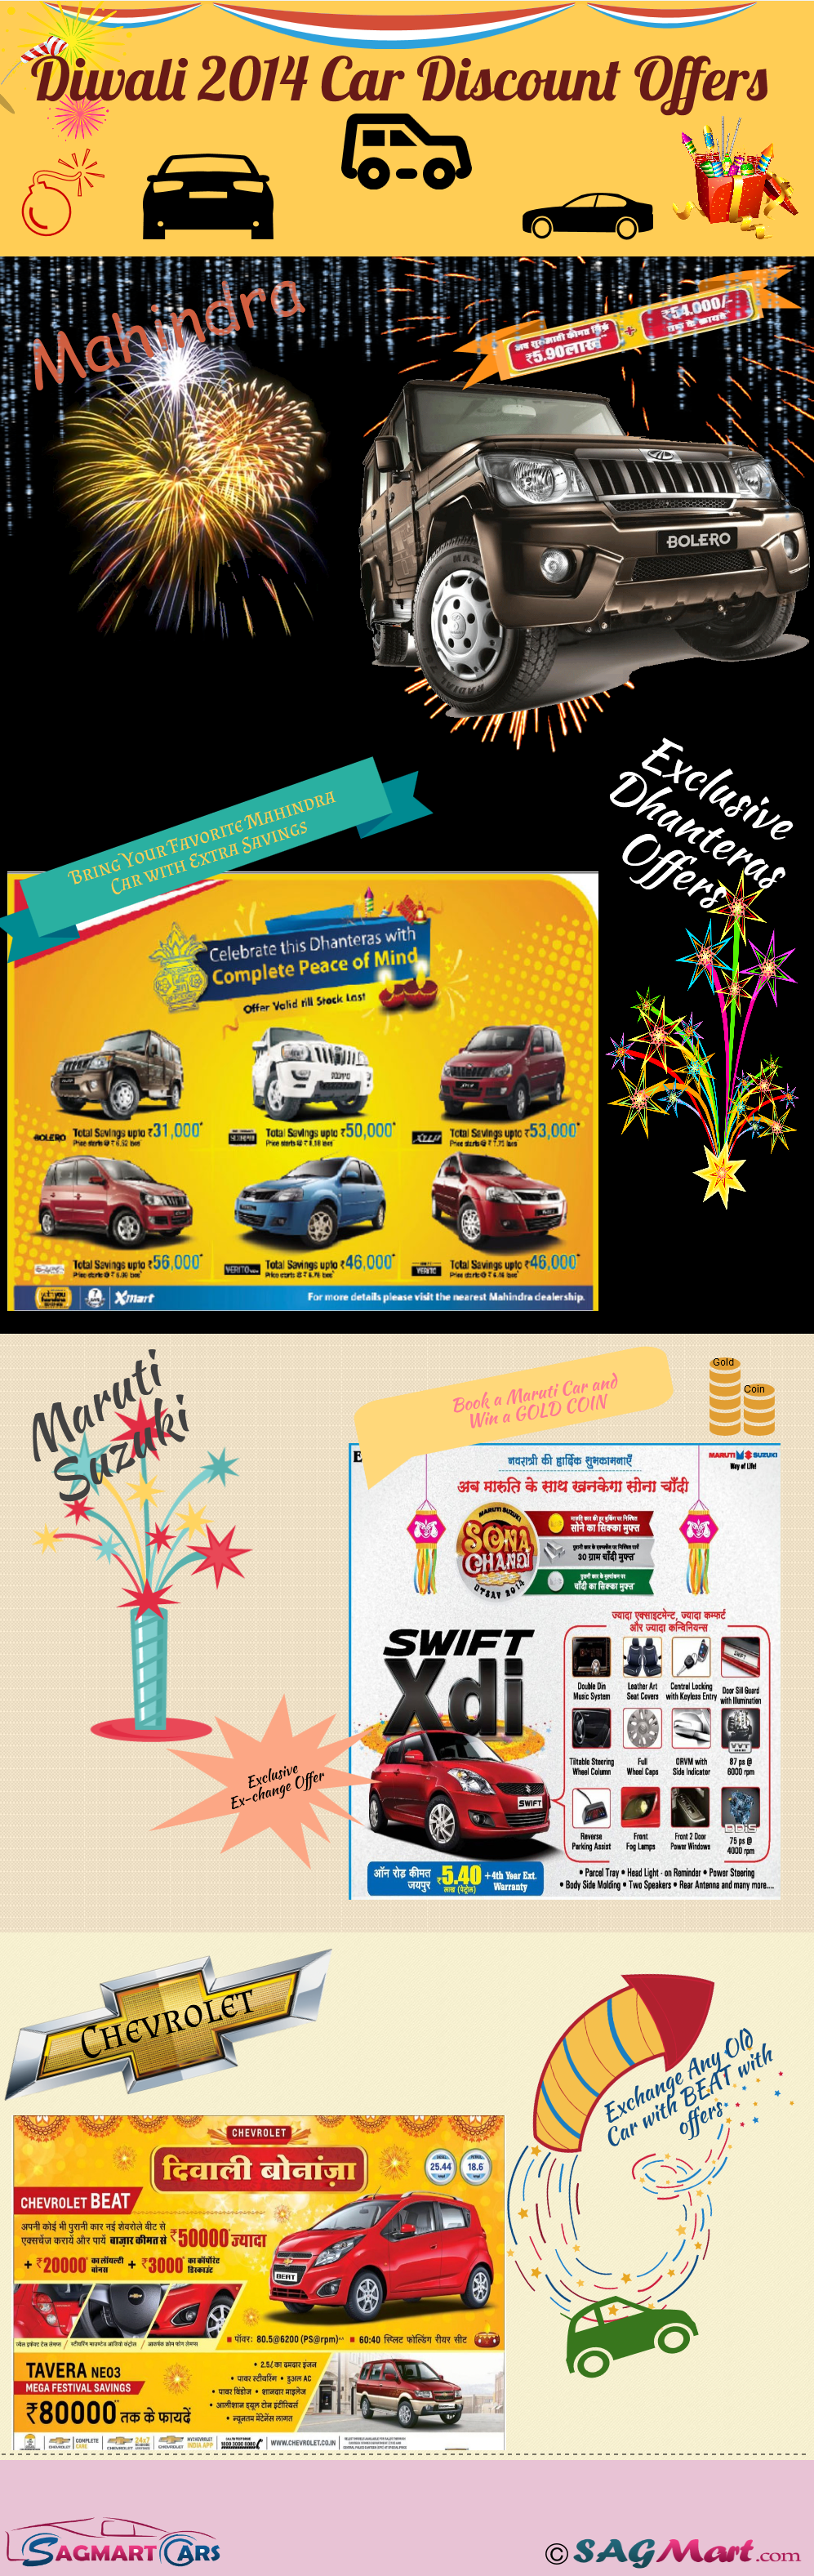 Diwali-2014-cars-discount-offers-Infographic